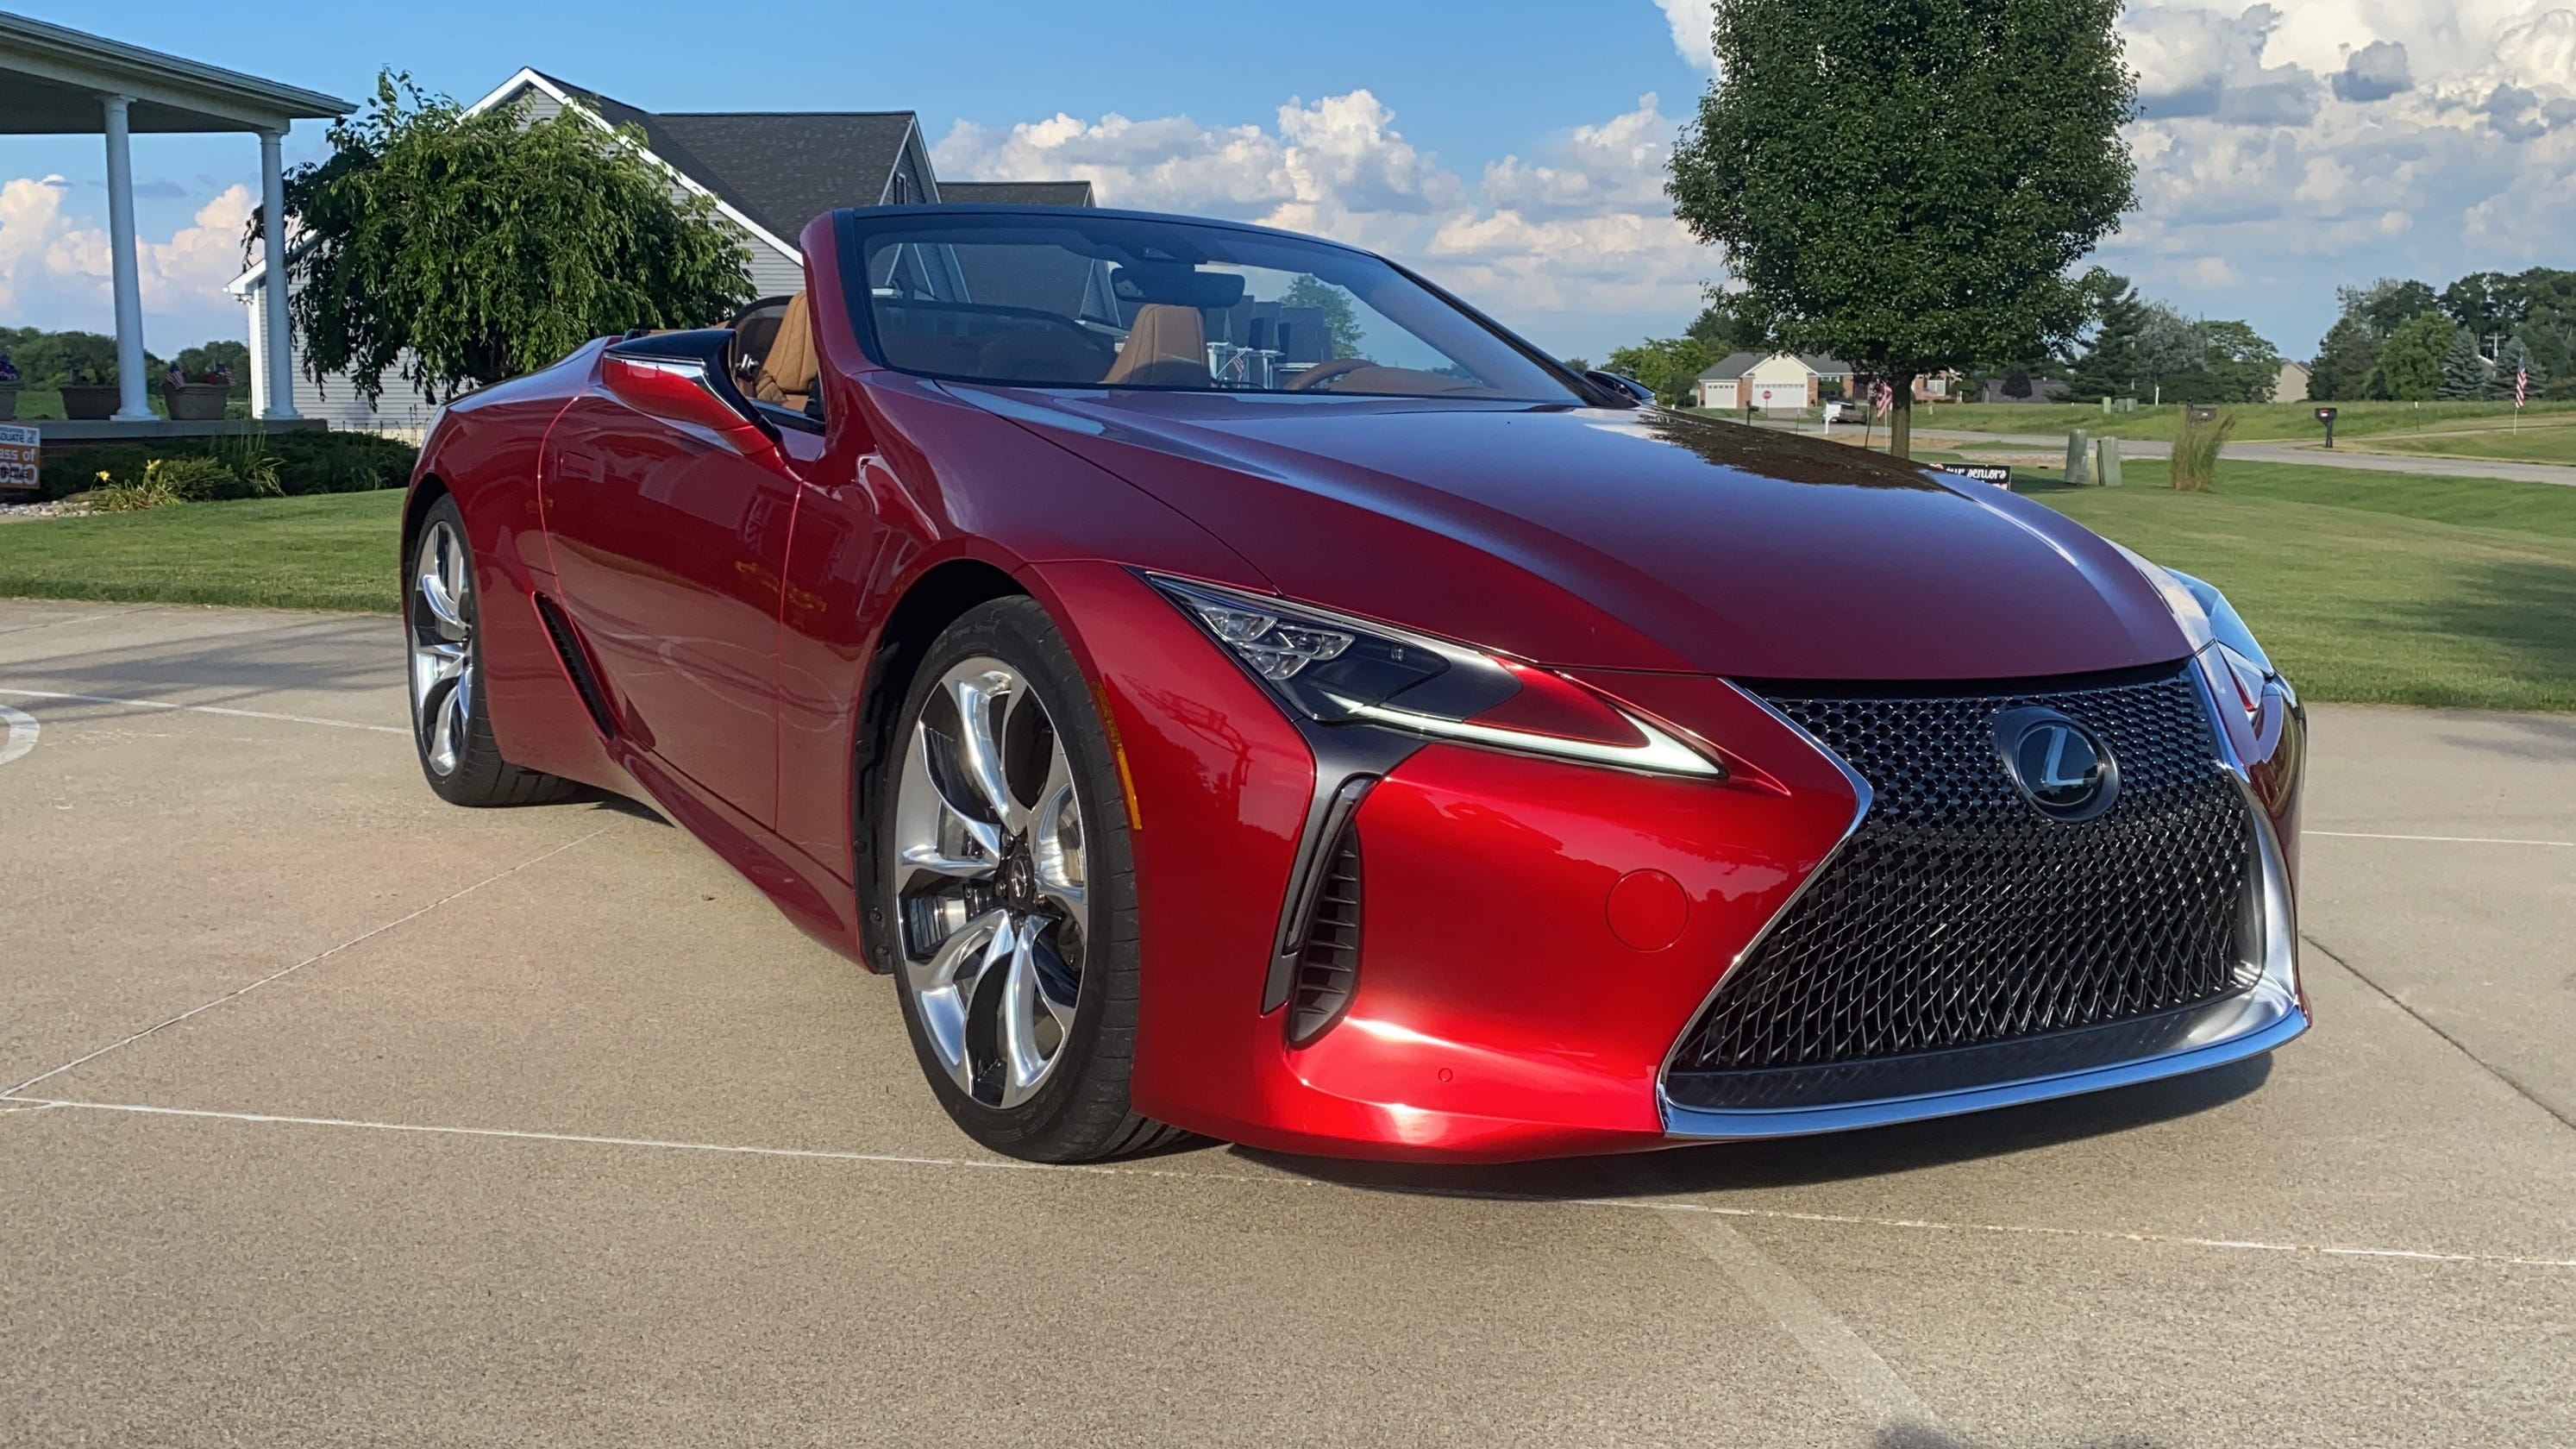 2021 lexus lc 500 convertible takes the brand's style to